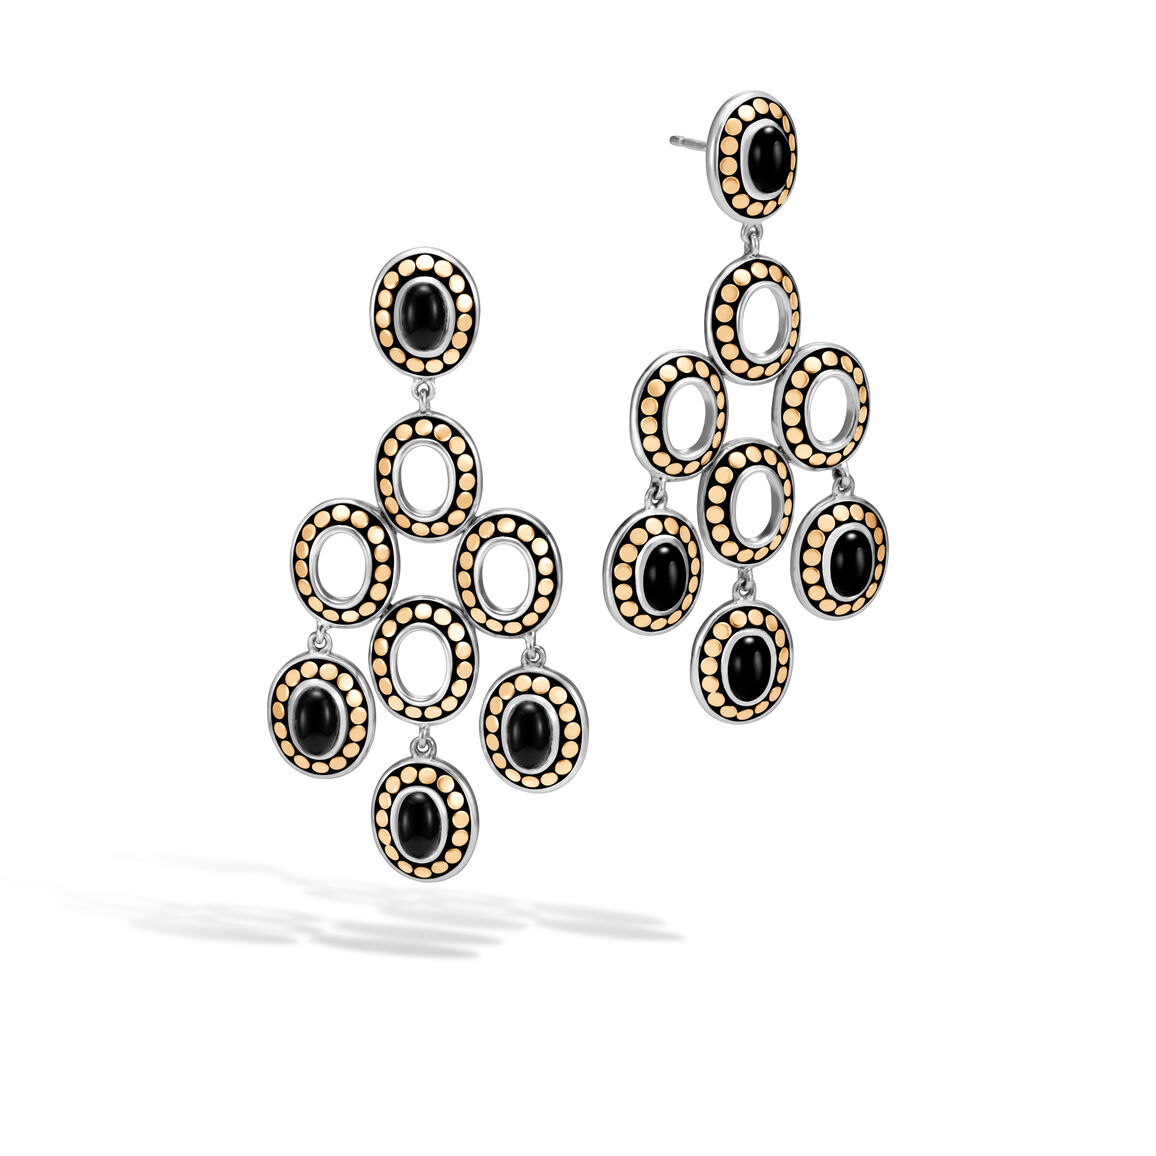 Dot Chandelier Earring, Silver and 18K Gold, 6x4MM Gemstone